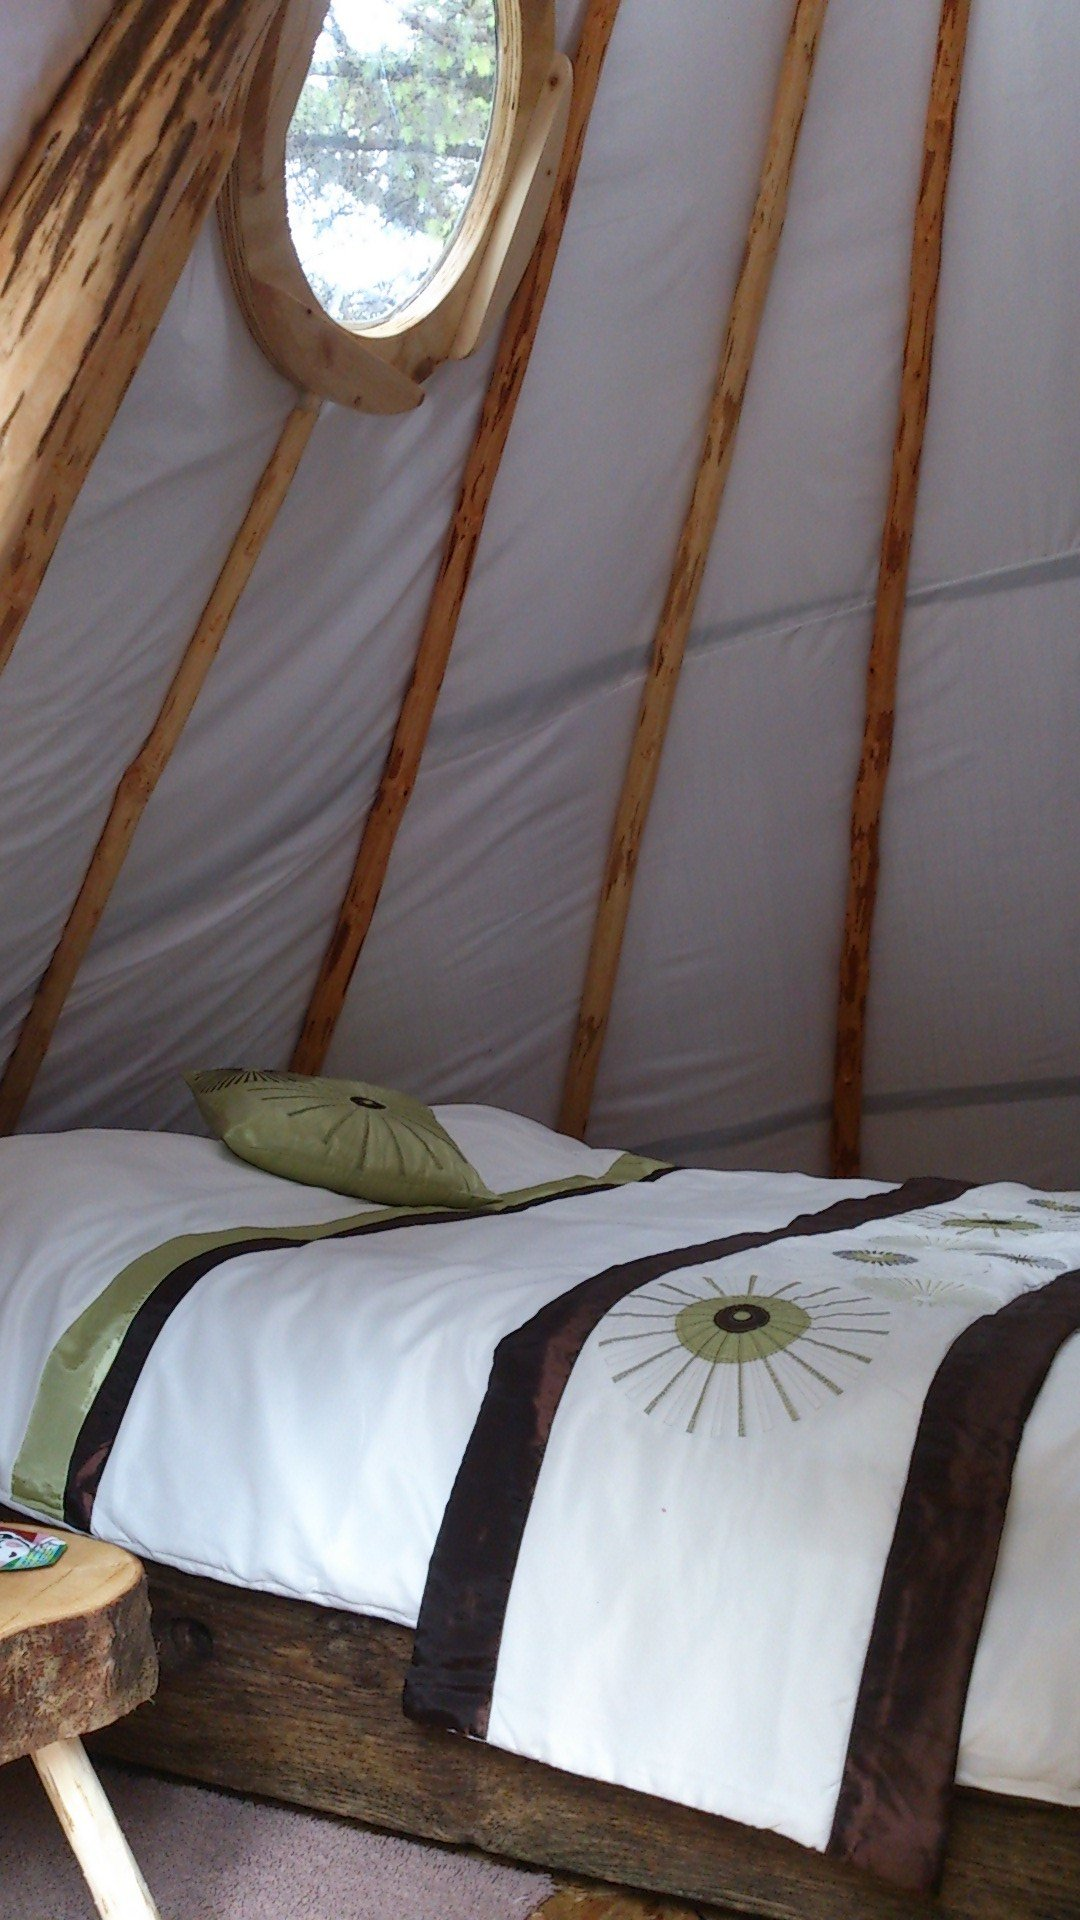 pink-apple-orchard-irelandglamping-teepee-yurts-007